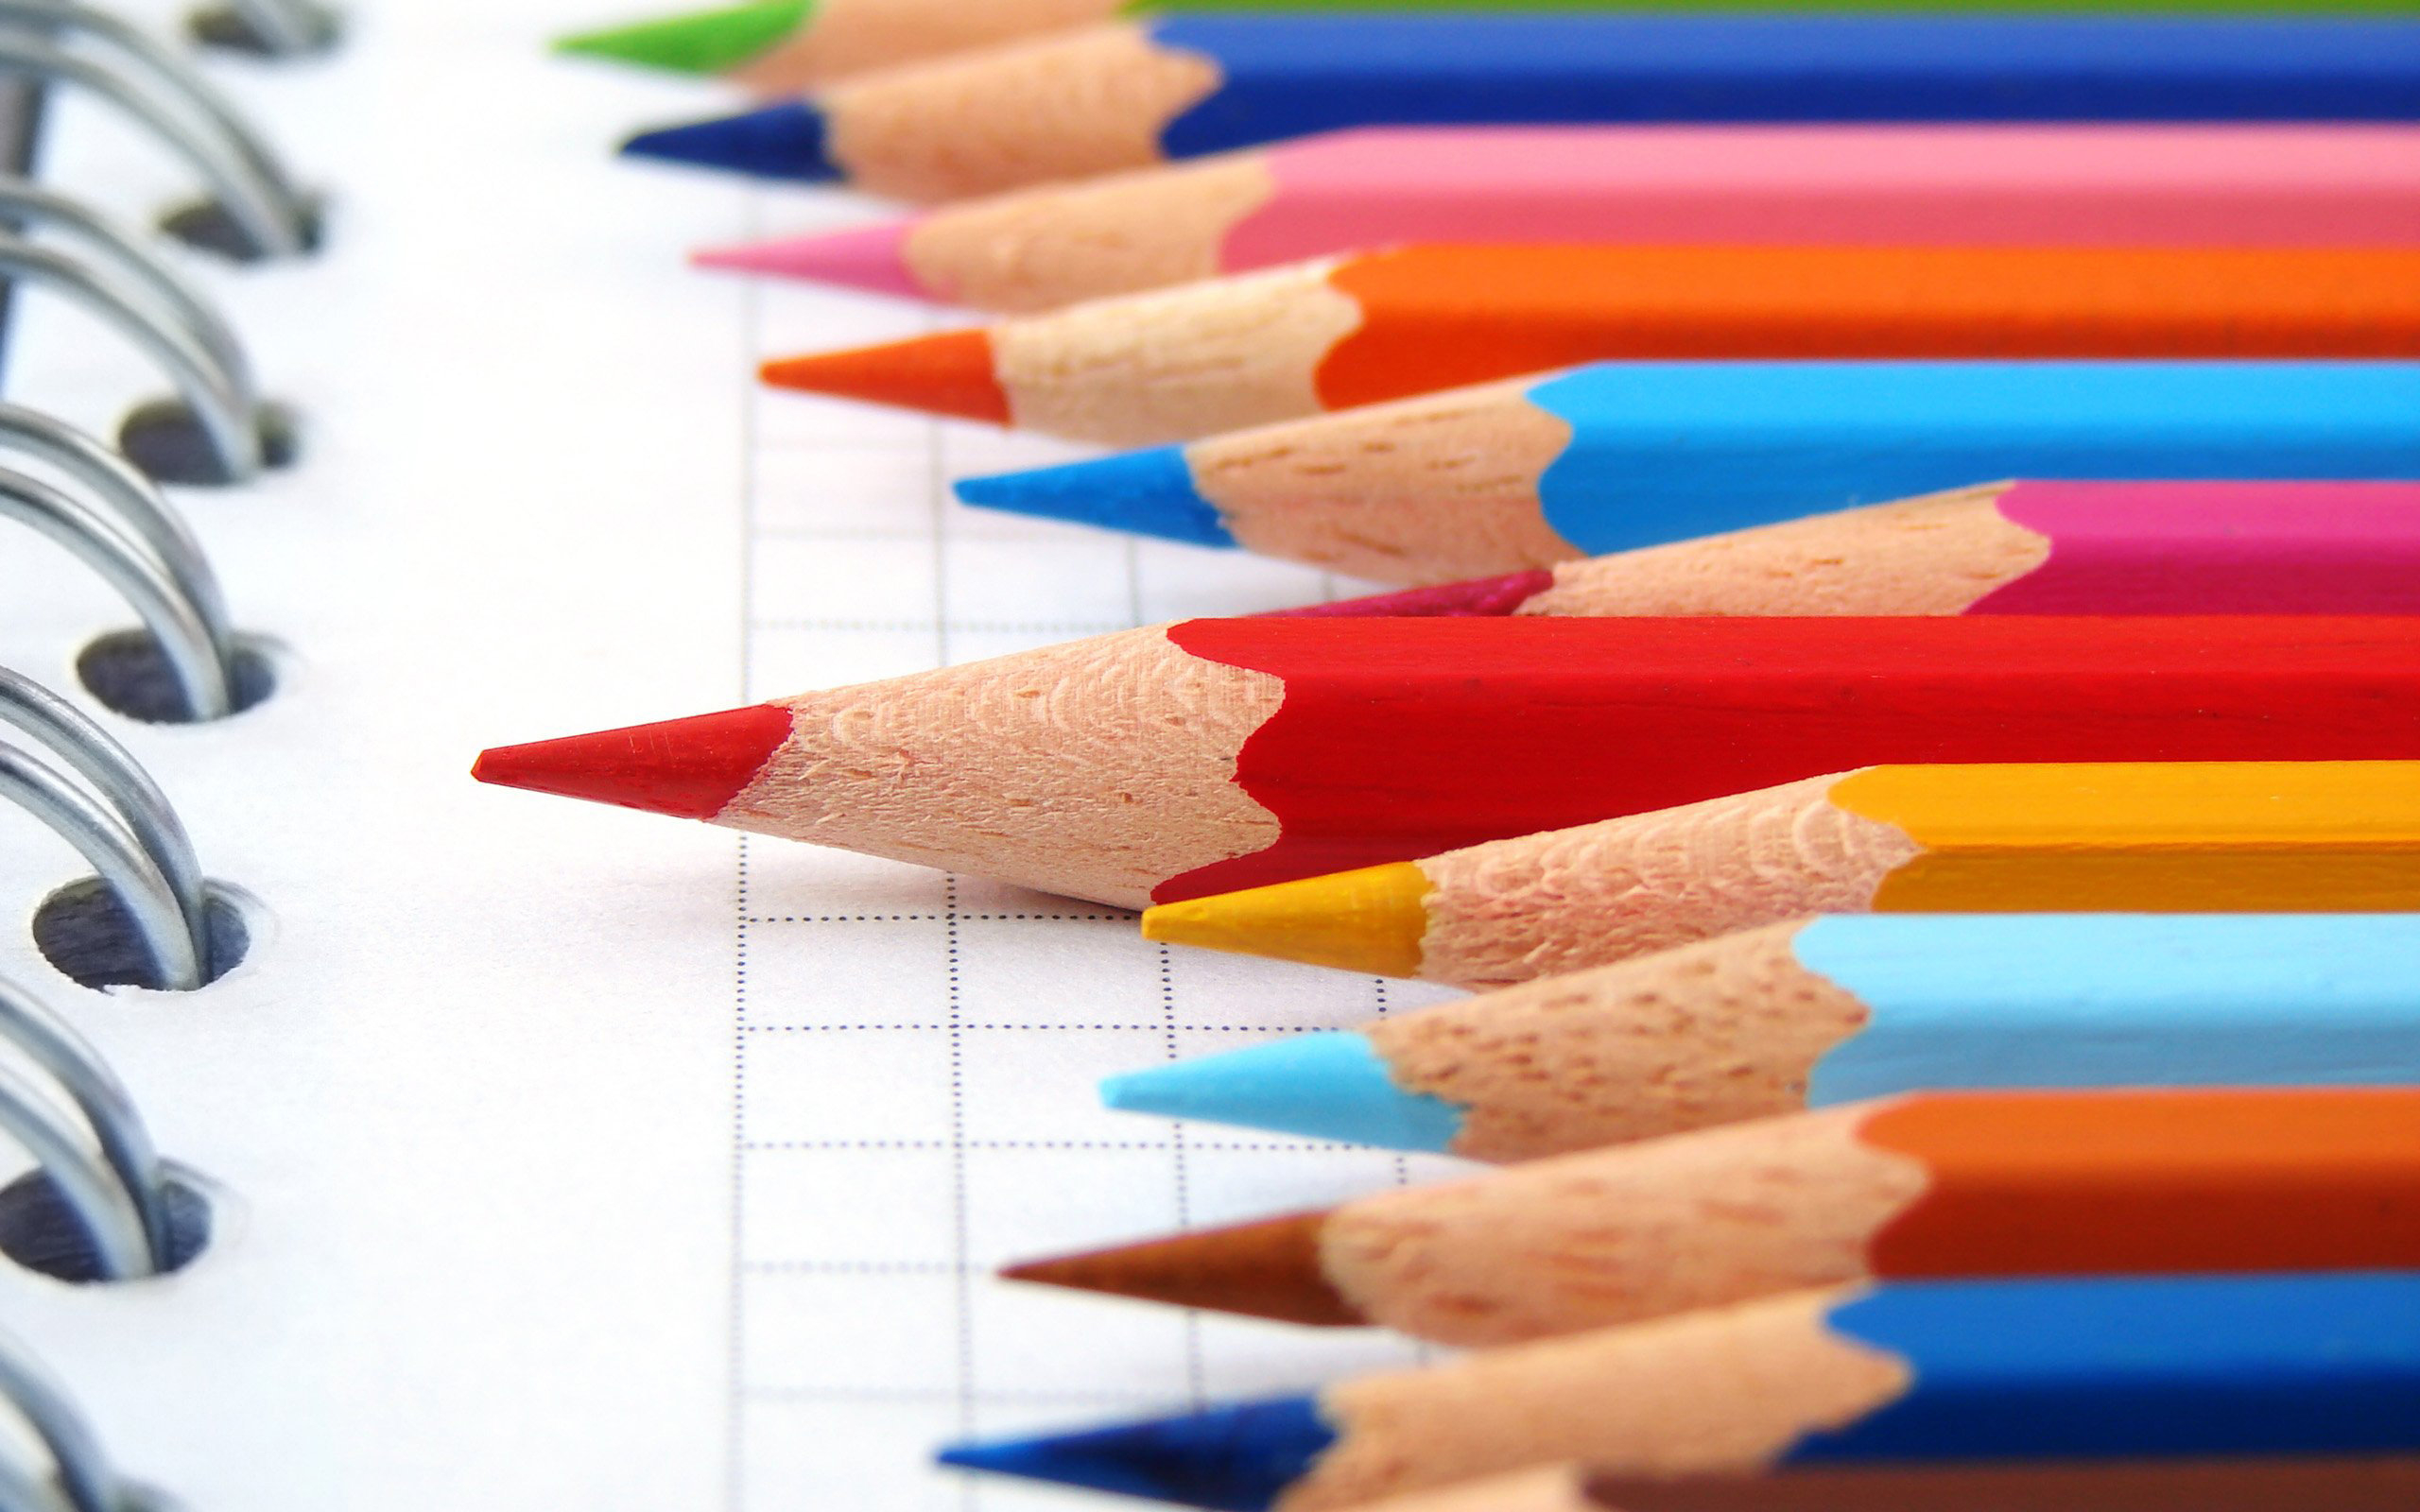 Pencil Wallpapers 40834 1920x1200 px